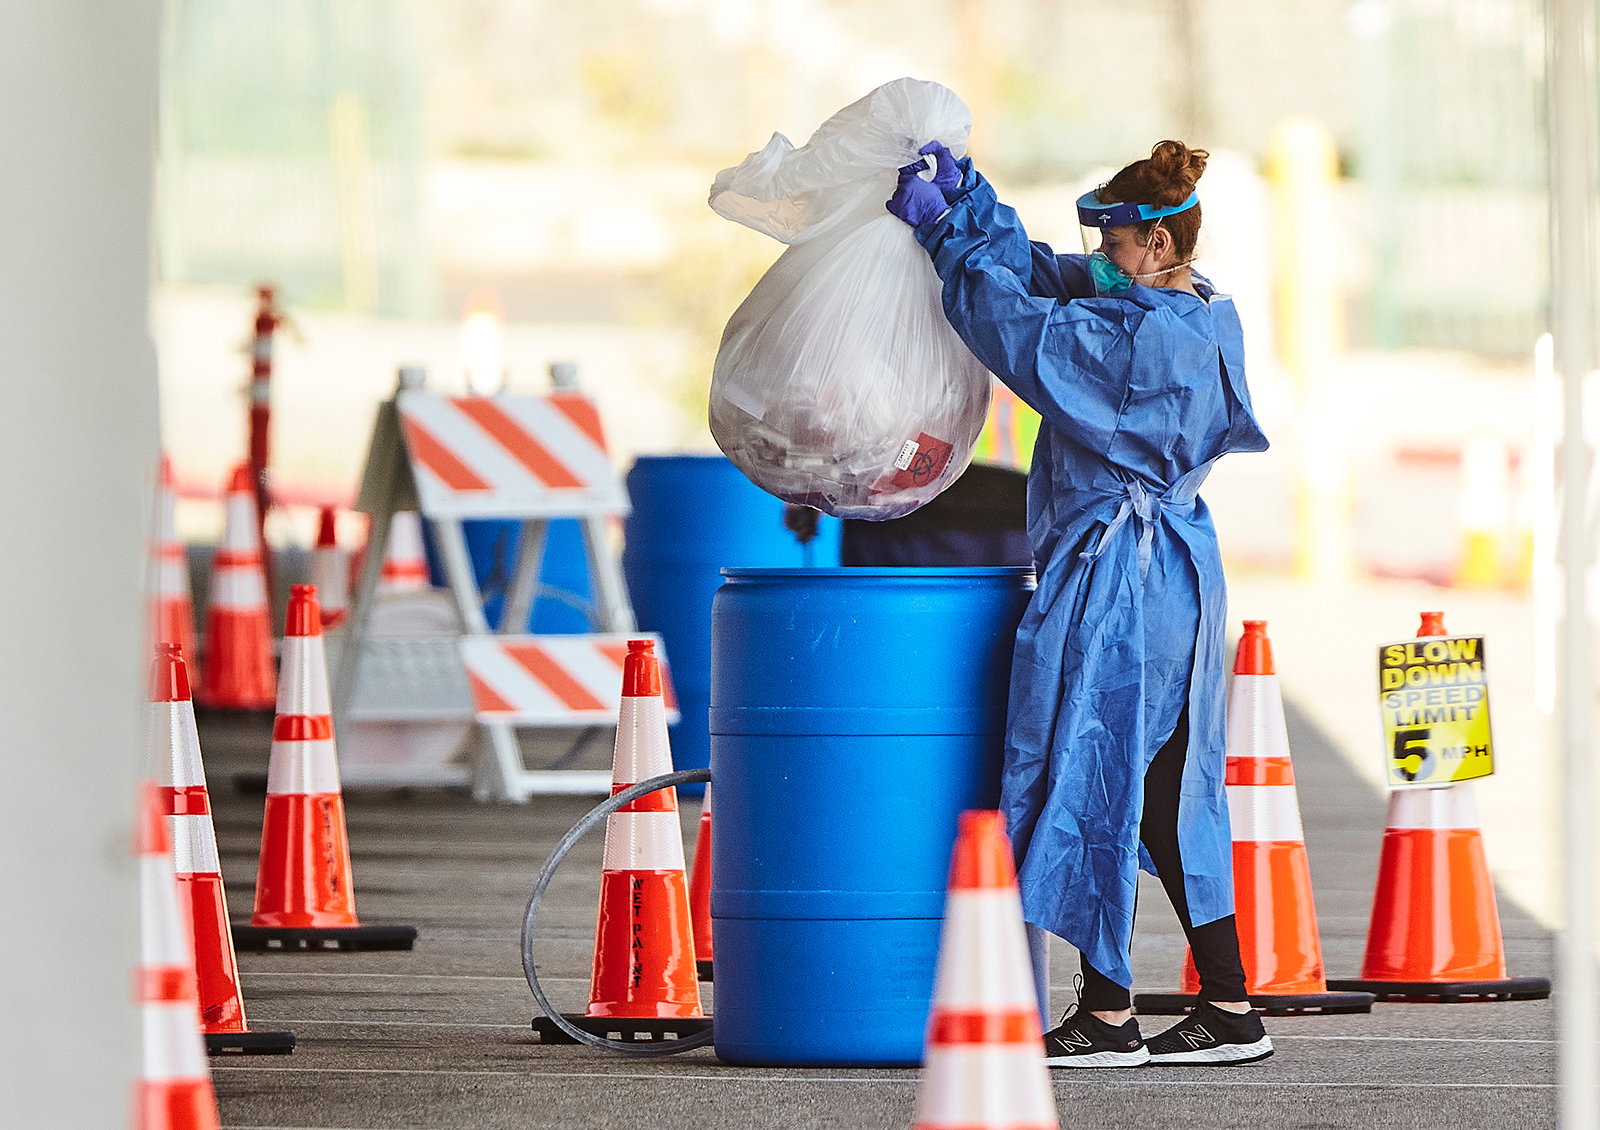 A medical worker wearing protective gear collects testing kits used by motorists at a coronavirus drive-up testing site at East Los Angeles College on April 30.